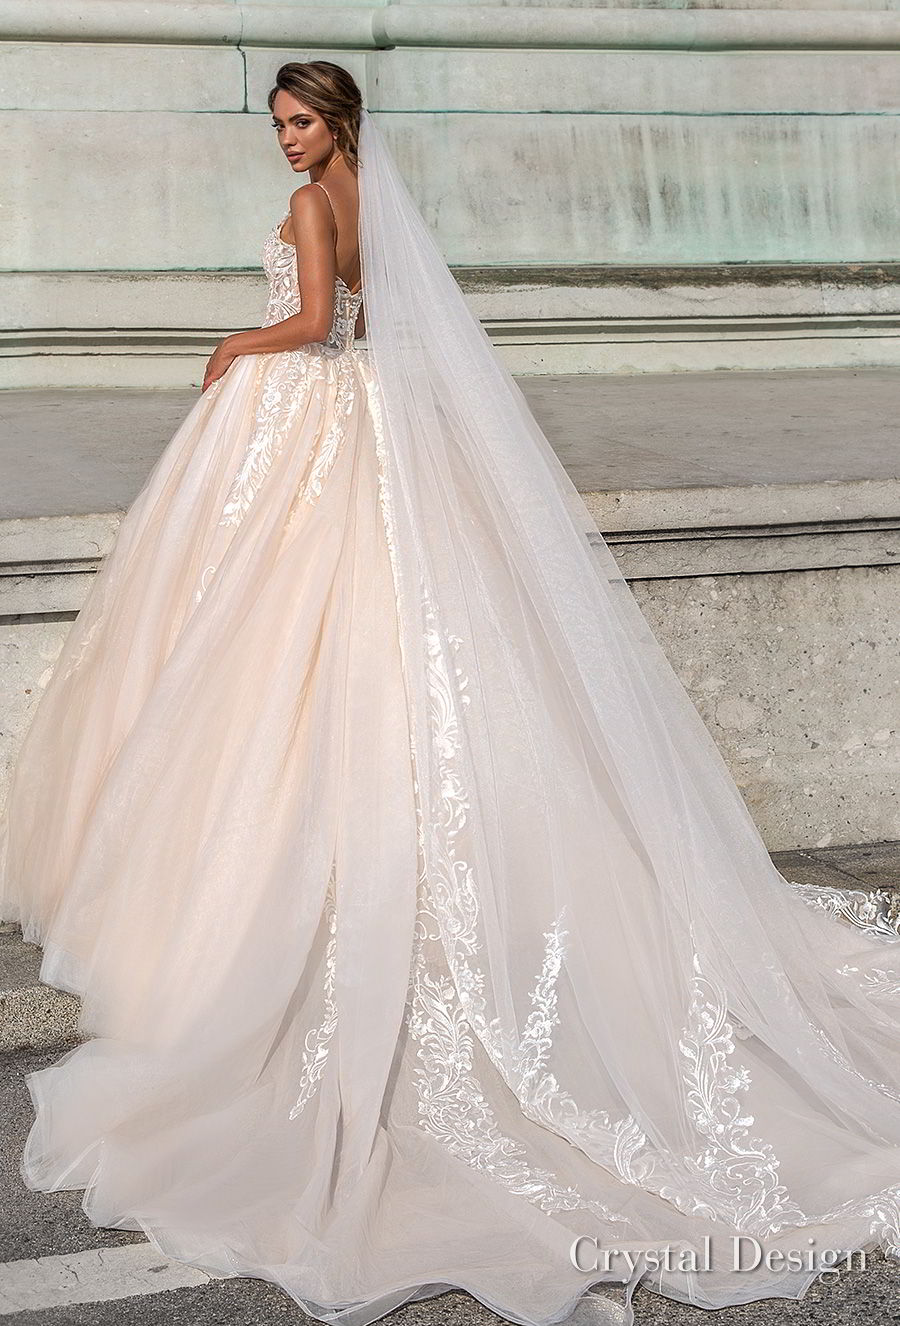 crystal design 2018 spaghetti strap sweetheart neckline heavily embellished bodice romantic ivory ball gown wedding dress chapel train (carol) bv